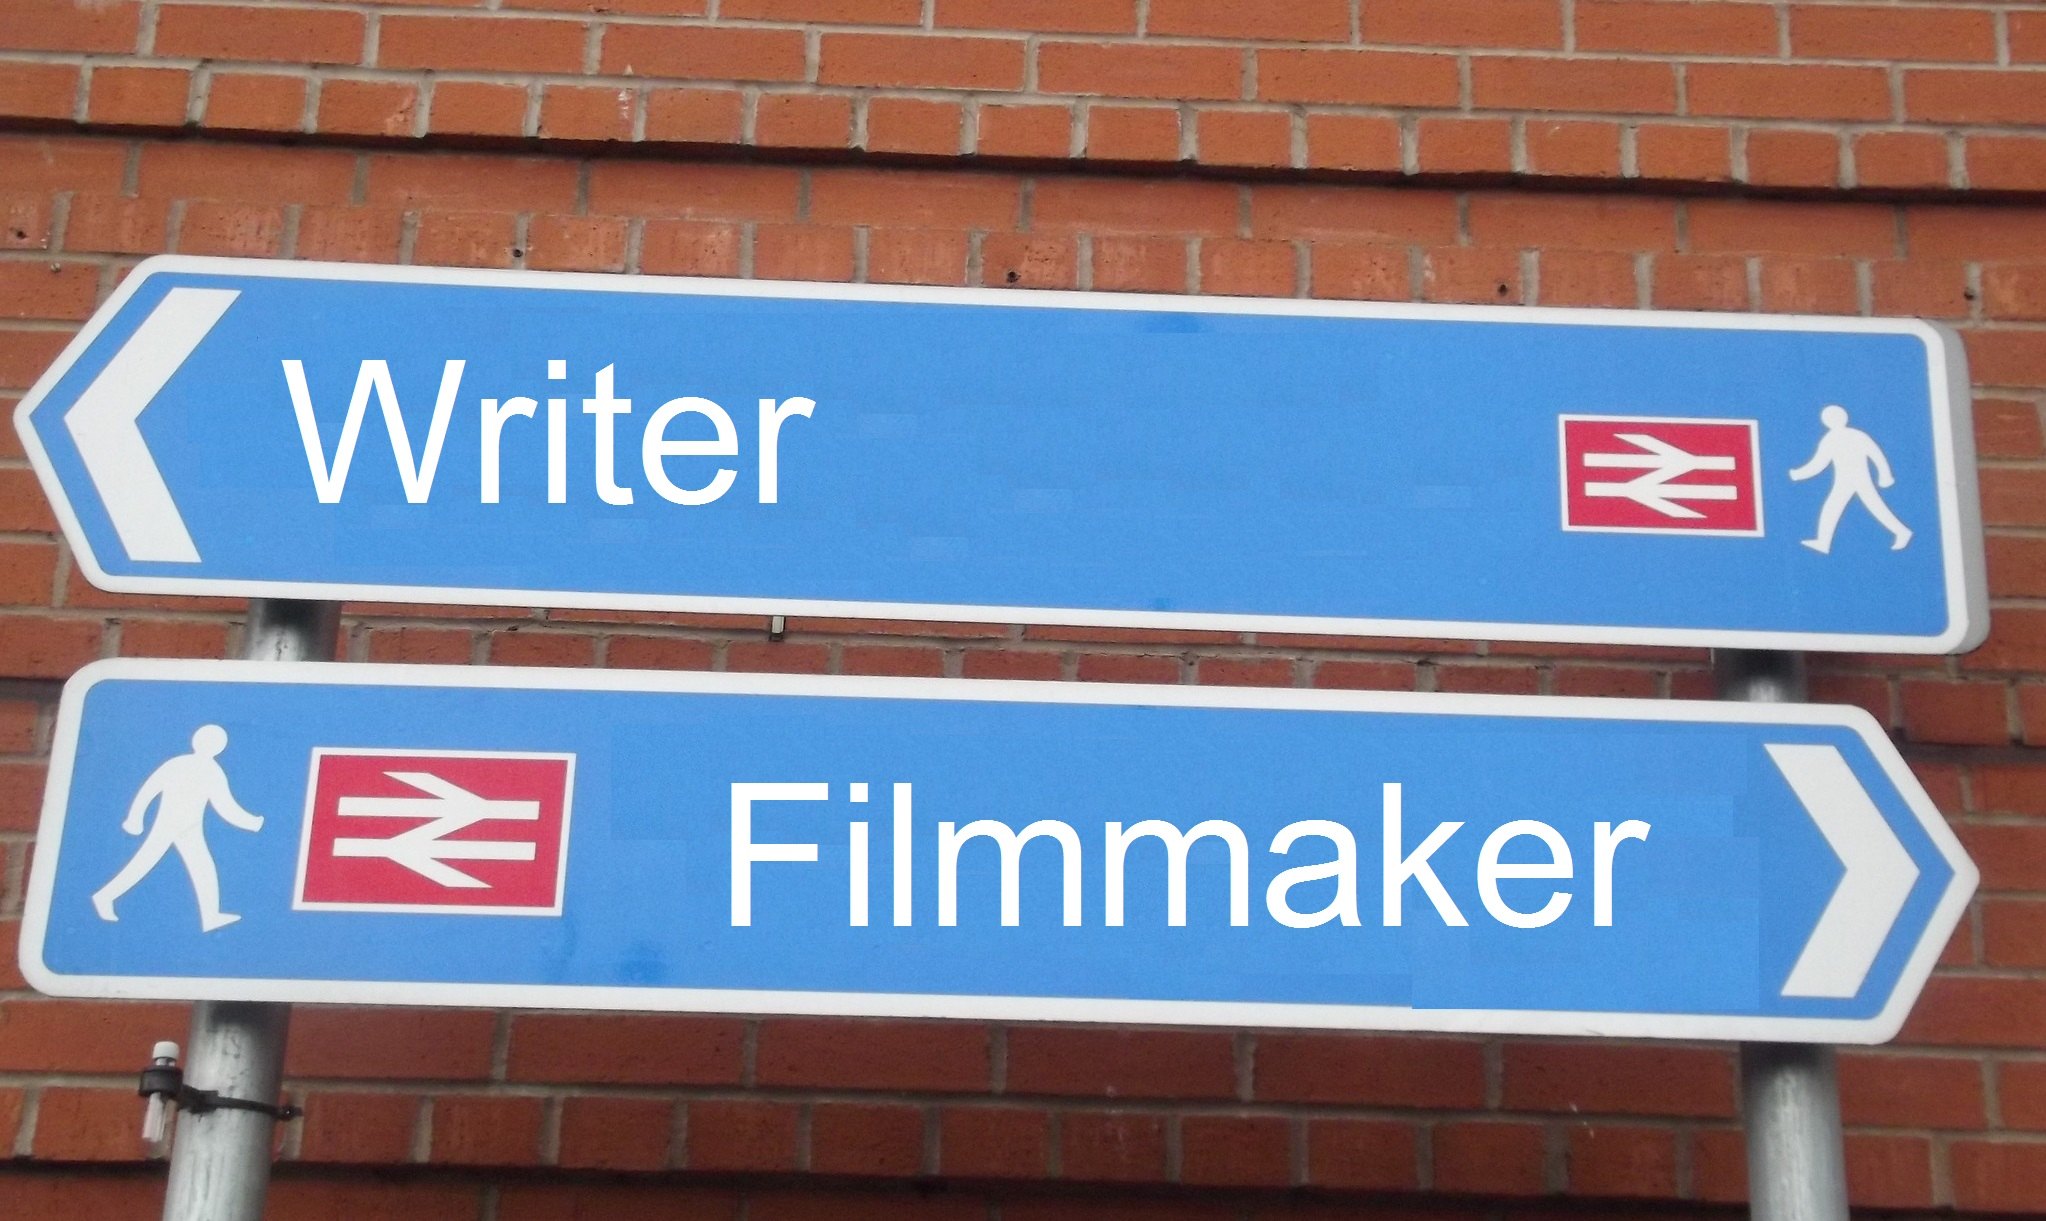 Writer vs Filmmaker